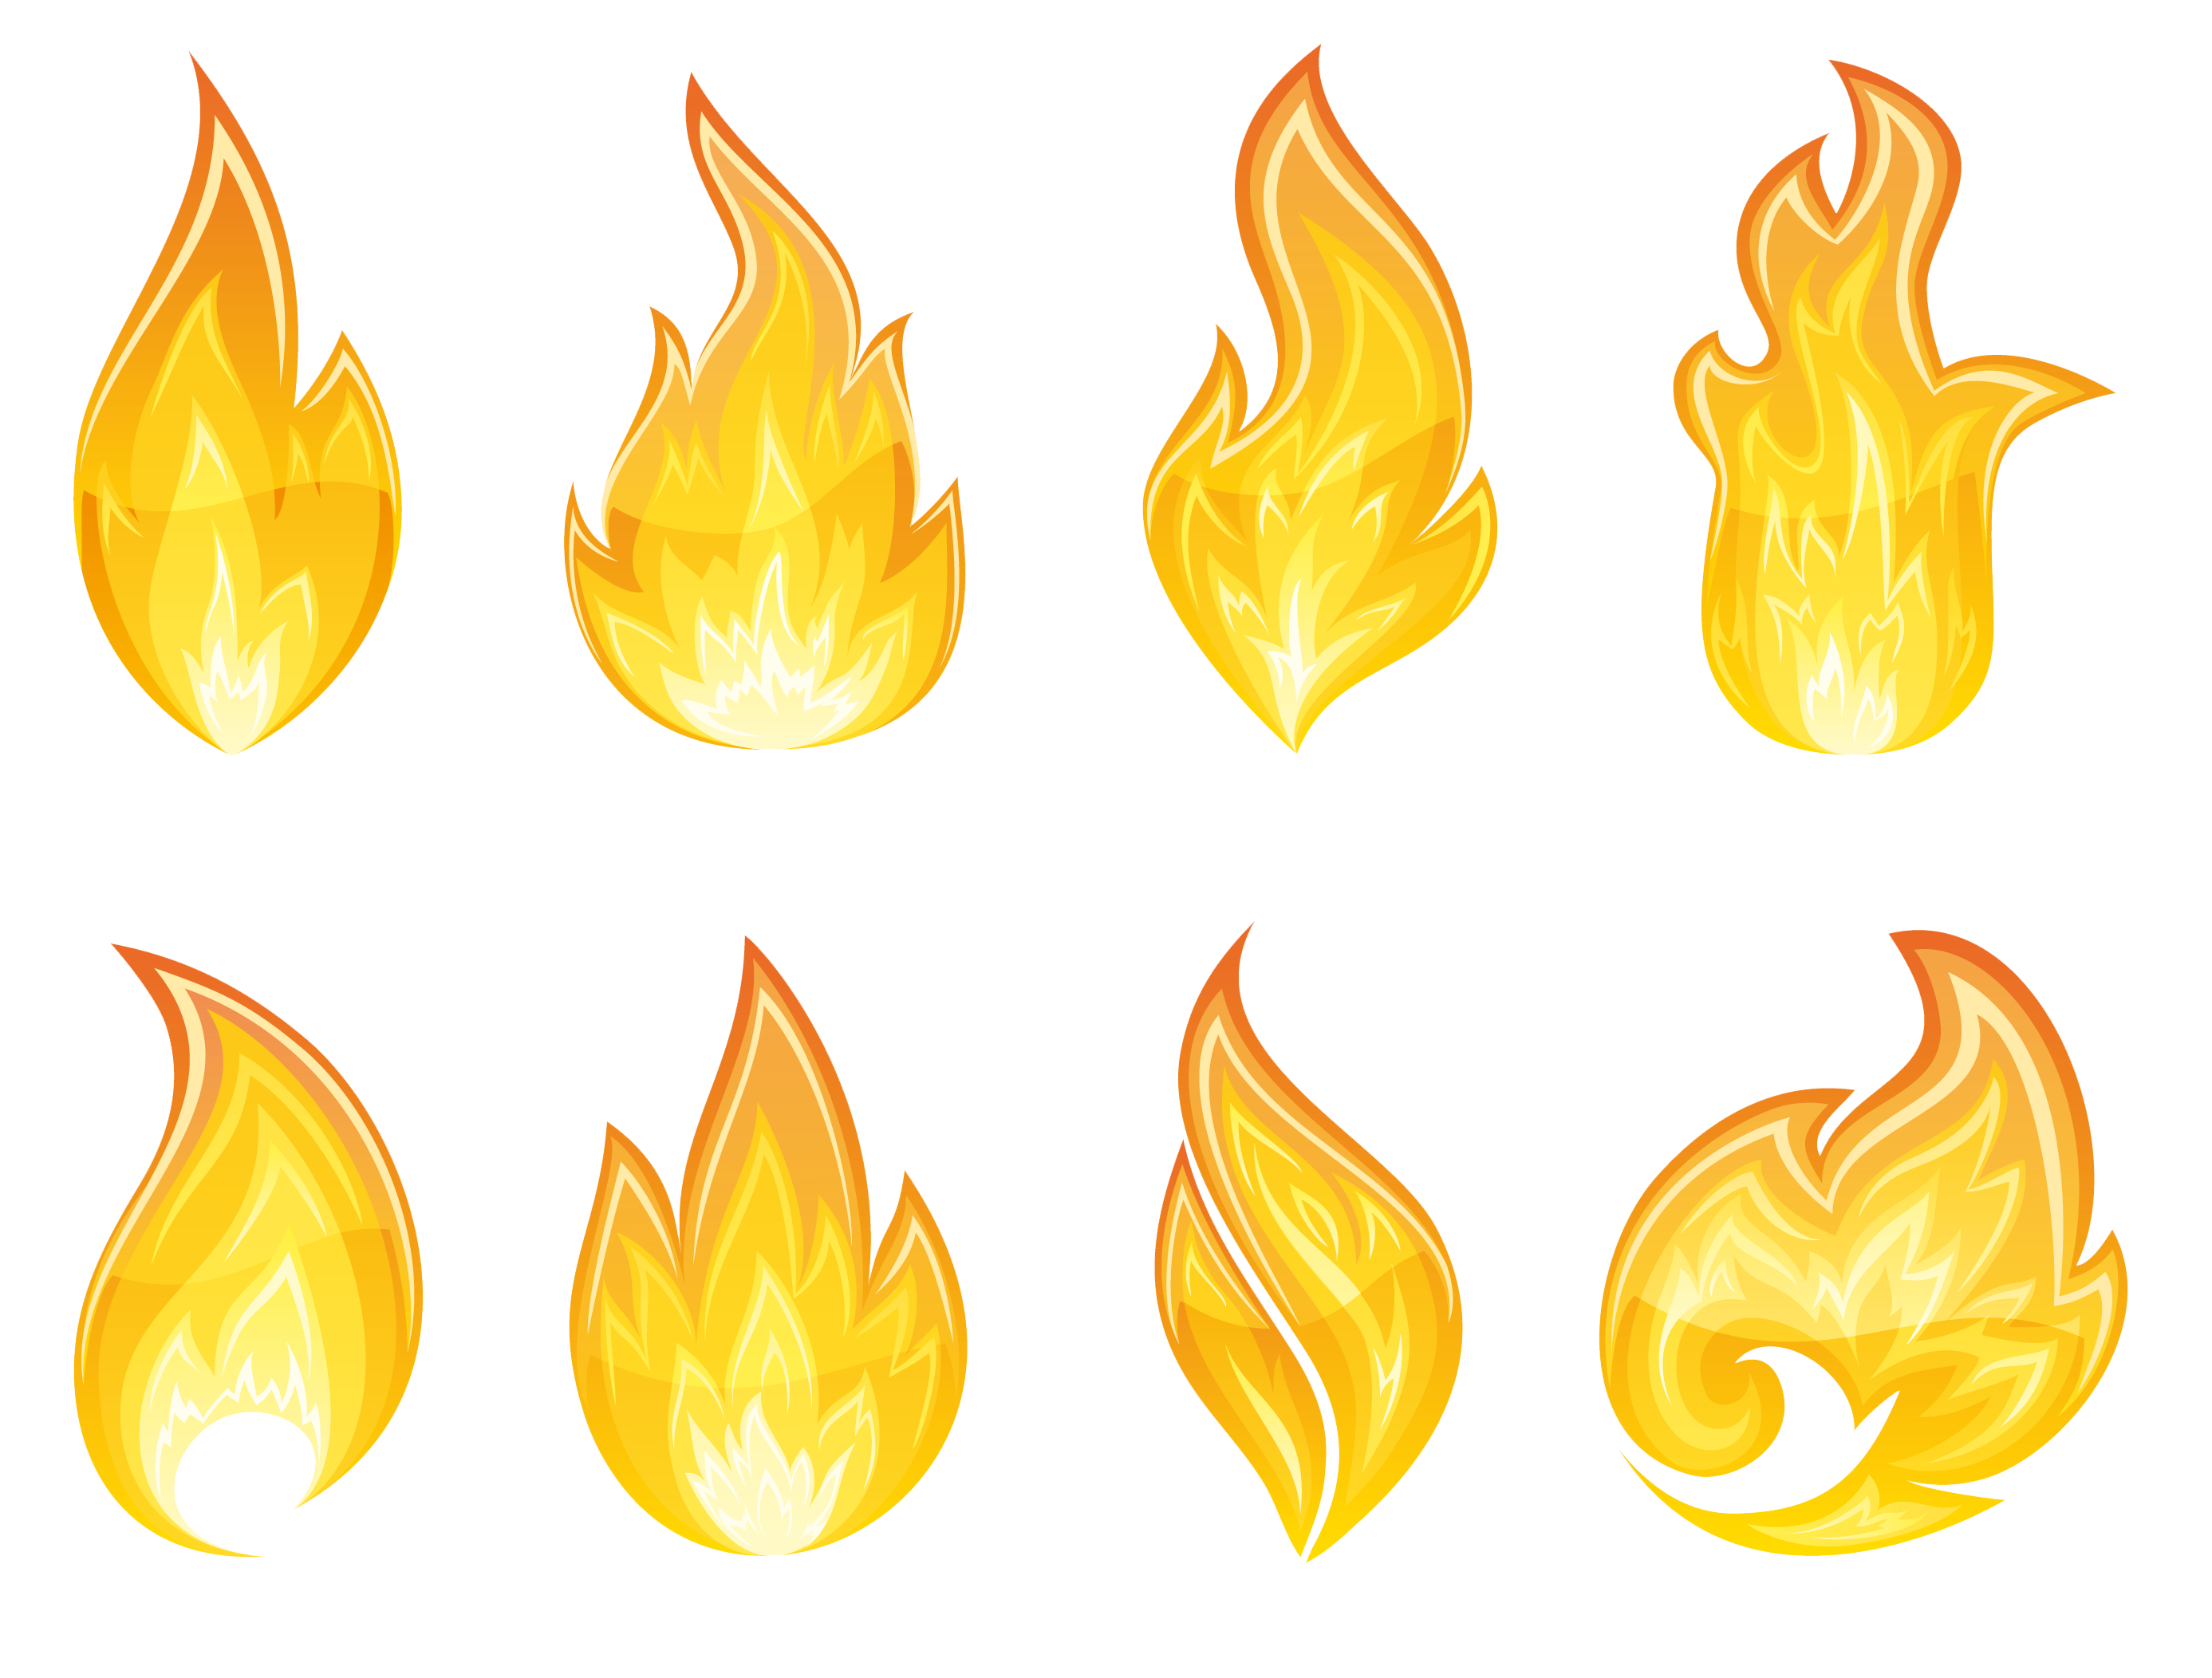 Flame clip art free clipart images 3 3